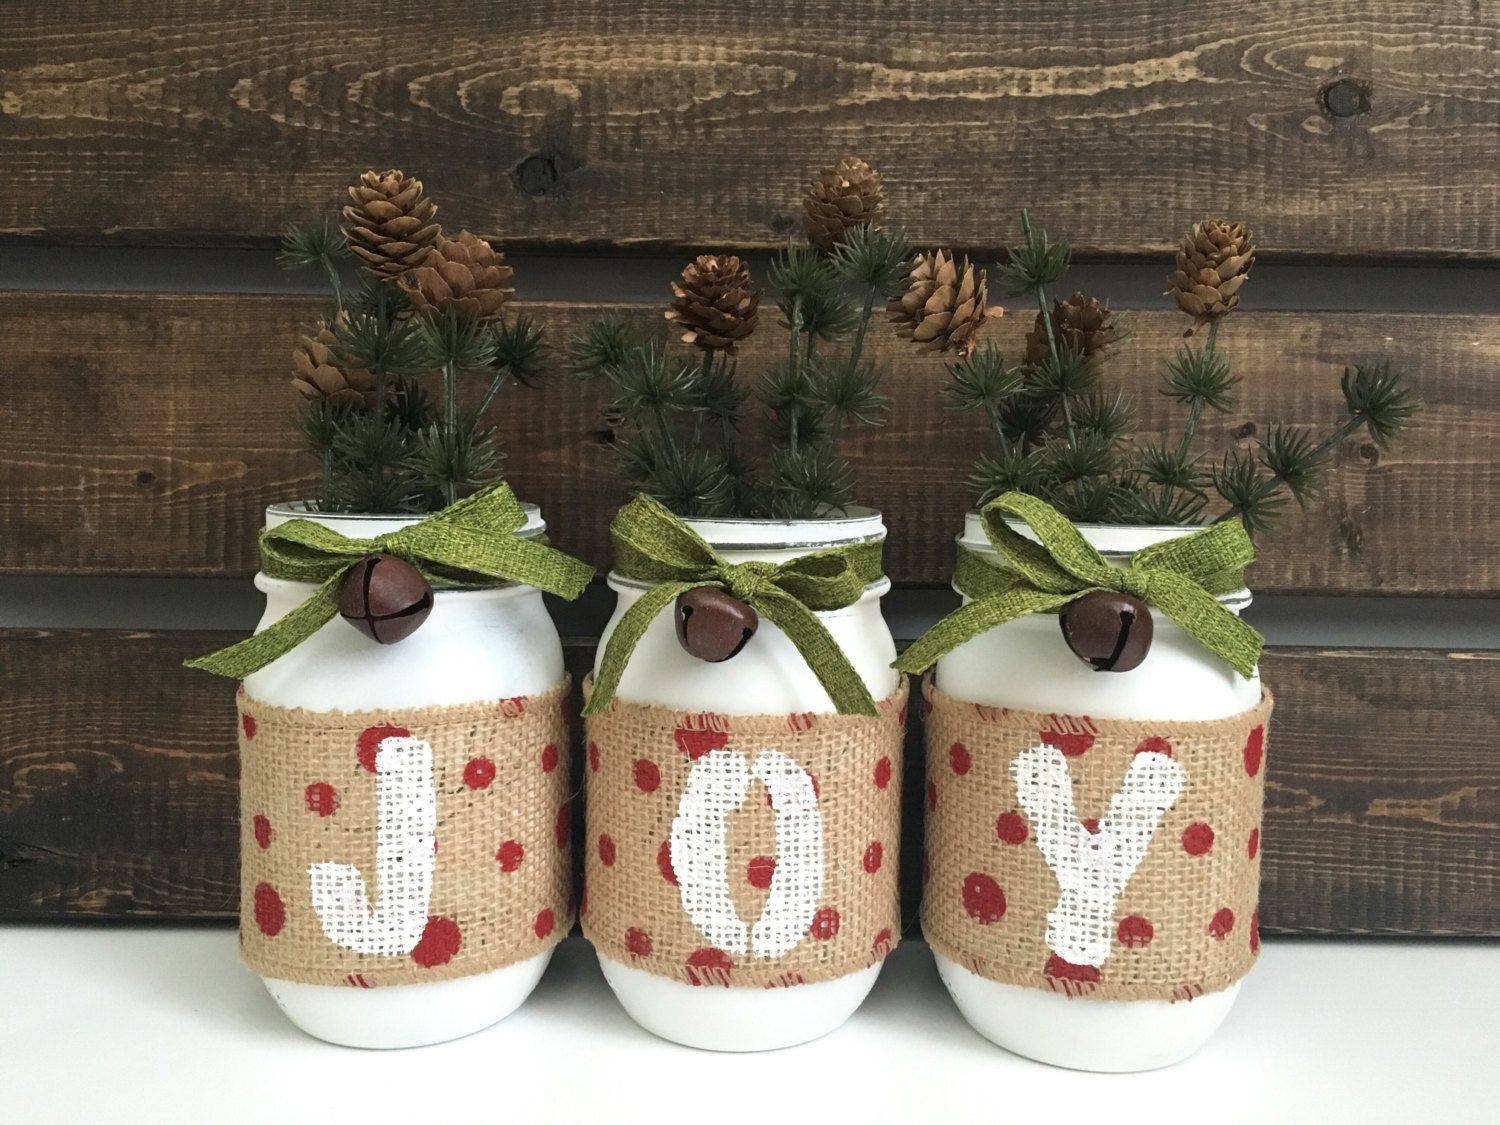 Mason Jar Decorations For Christmas Christmas Mason Jar Decor Holiday Centerpiece Table Decor